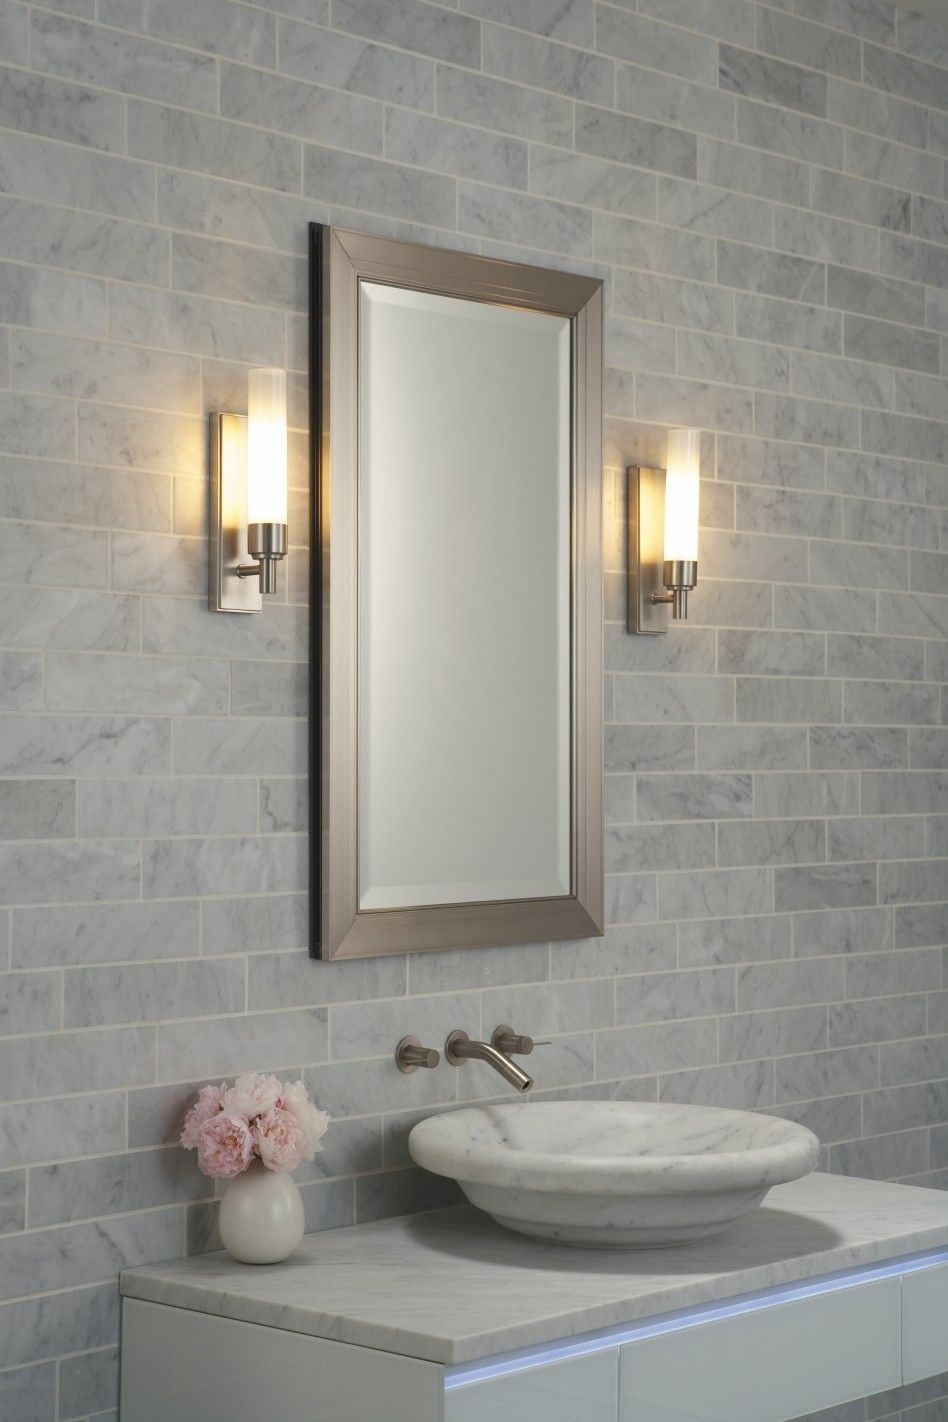 Bathroom Lights Mounted On Mirror bathroom, awesome bathroom fixtures wall lights over white mirror